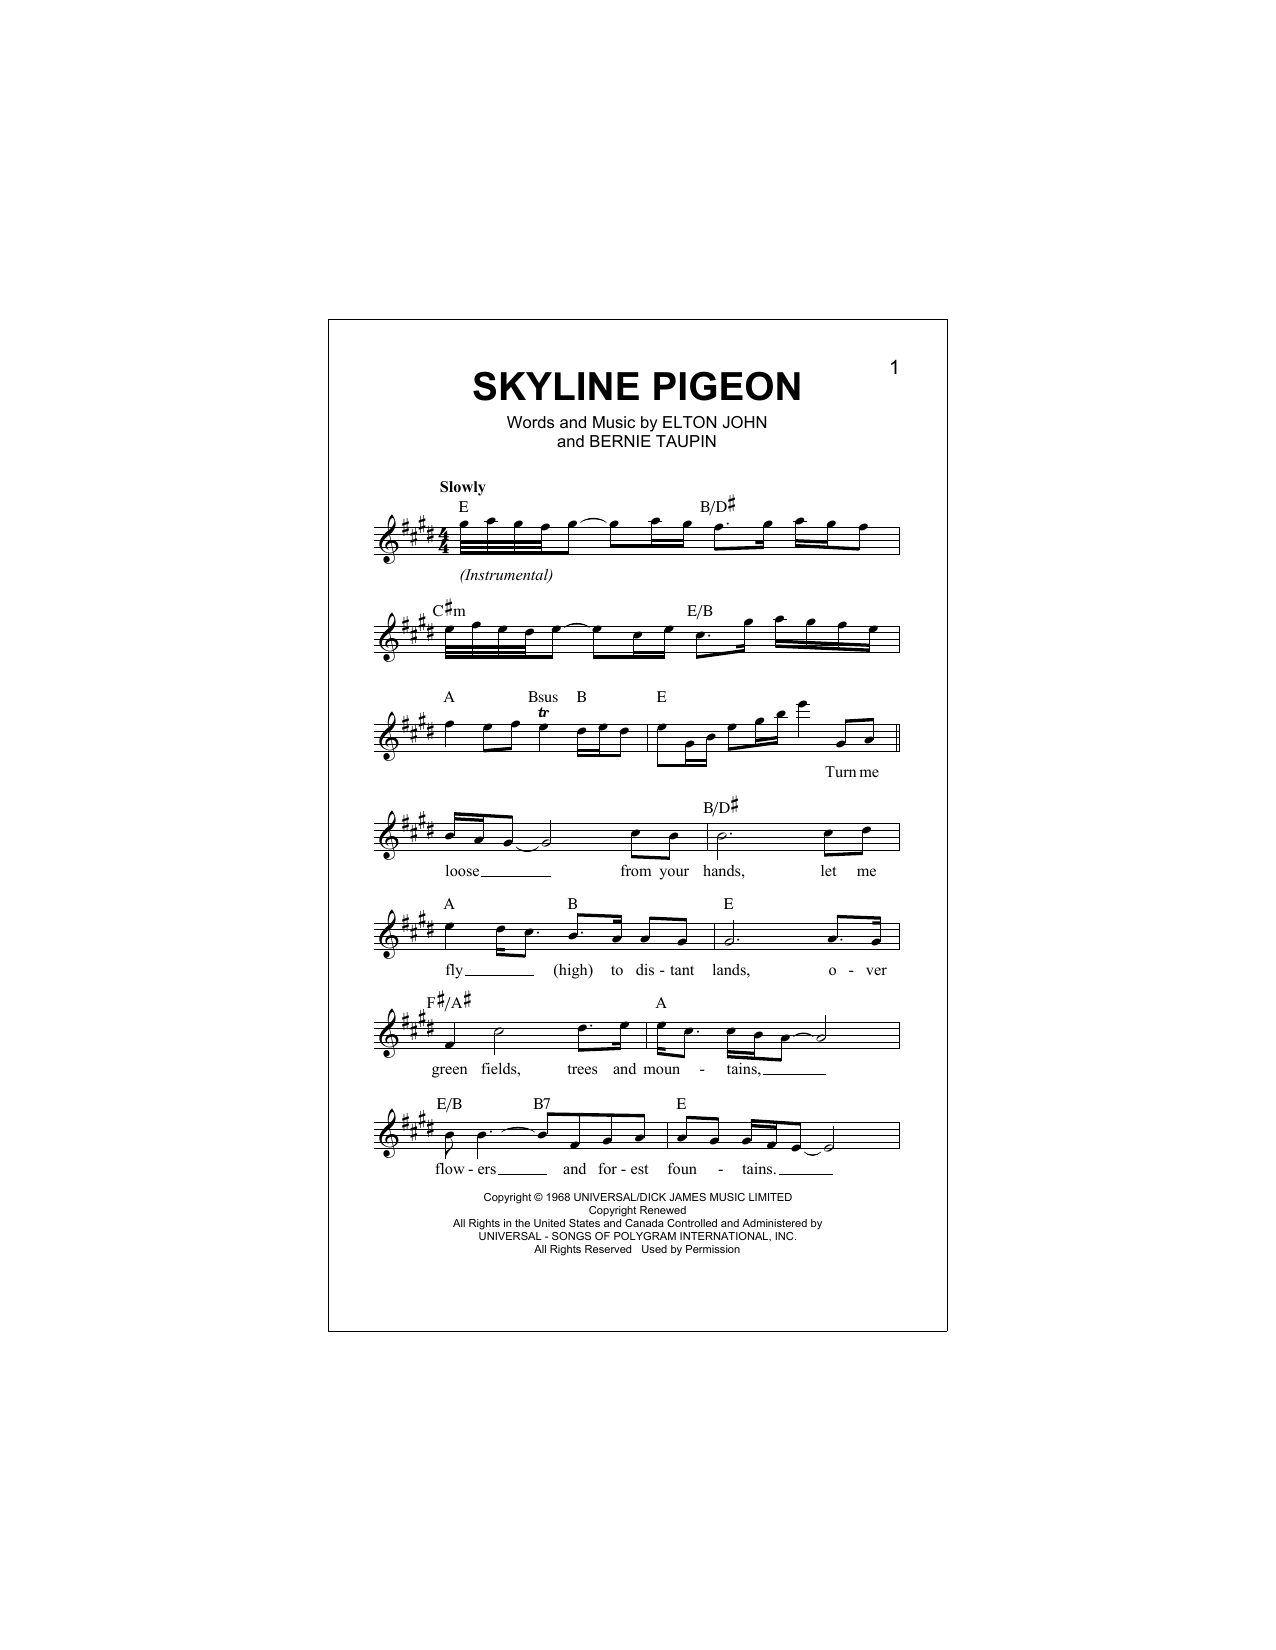 Skyline Pigeon Sheet Music